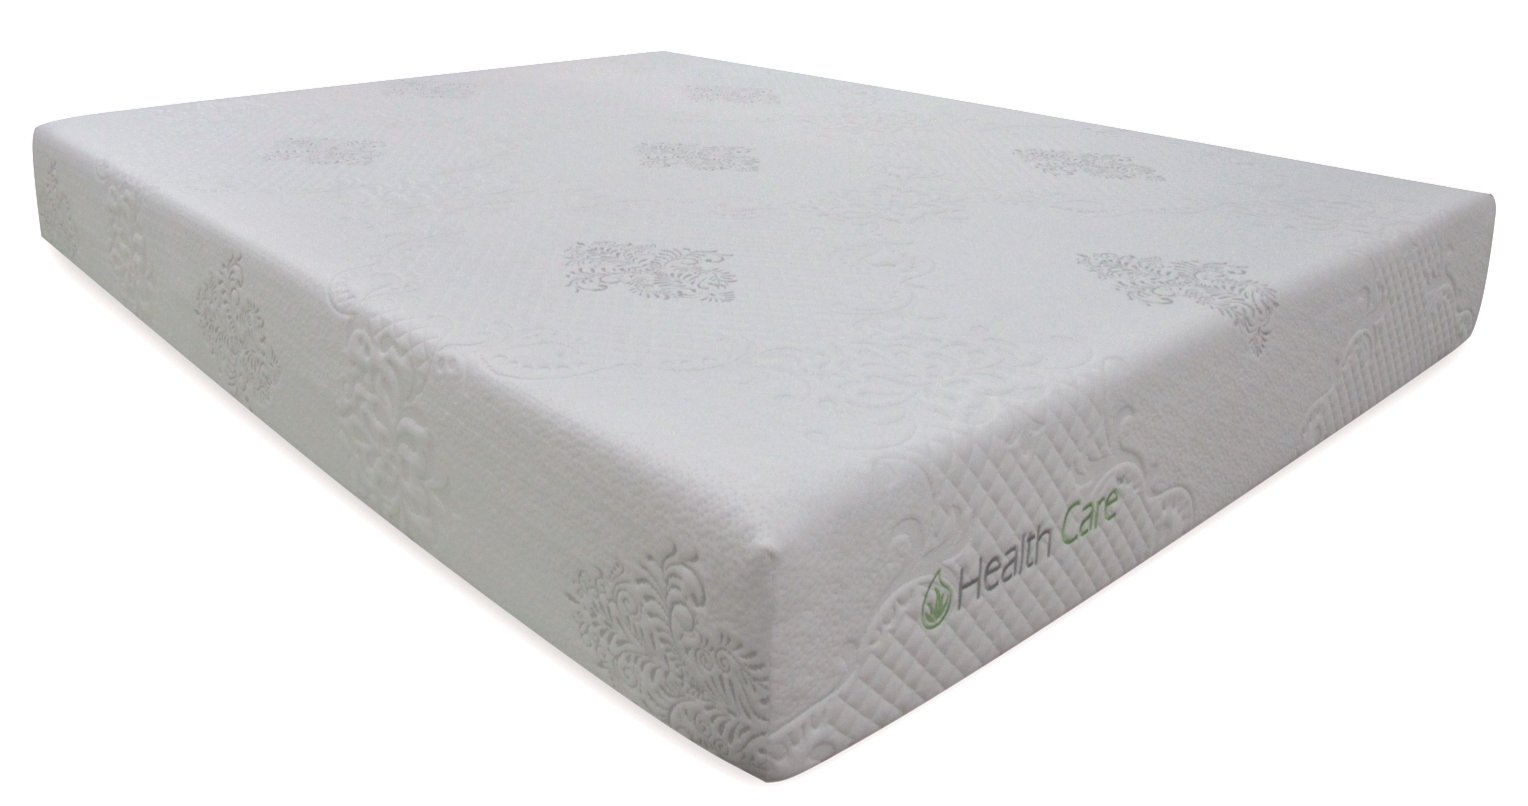 Queen 8 Memory Foam Mattress With Adjustable Massage Base Rc Willey Furniture Store